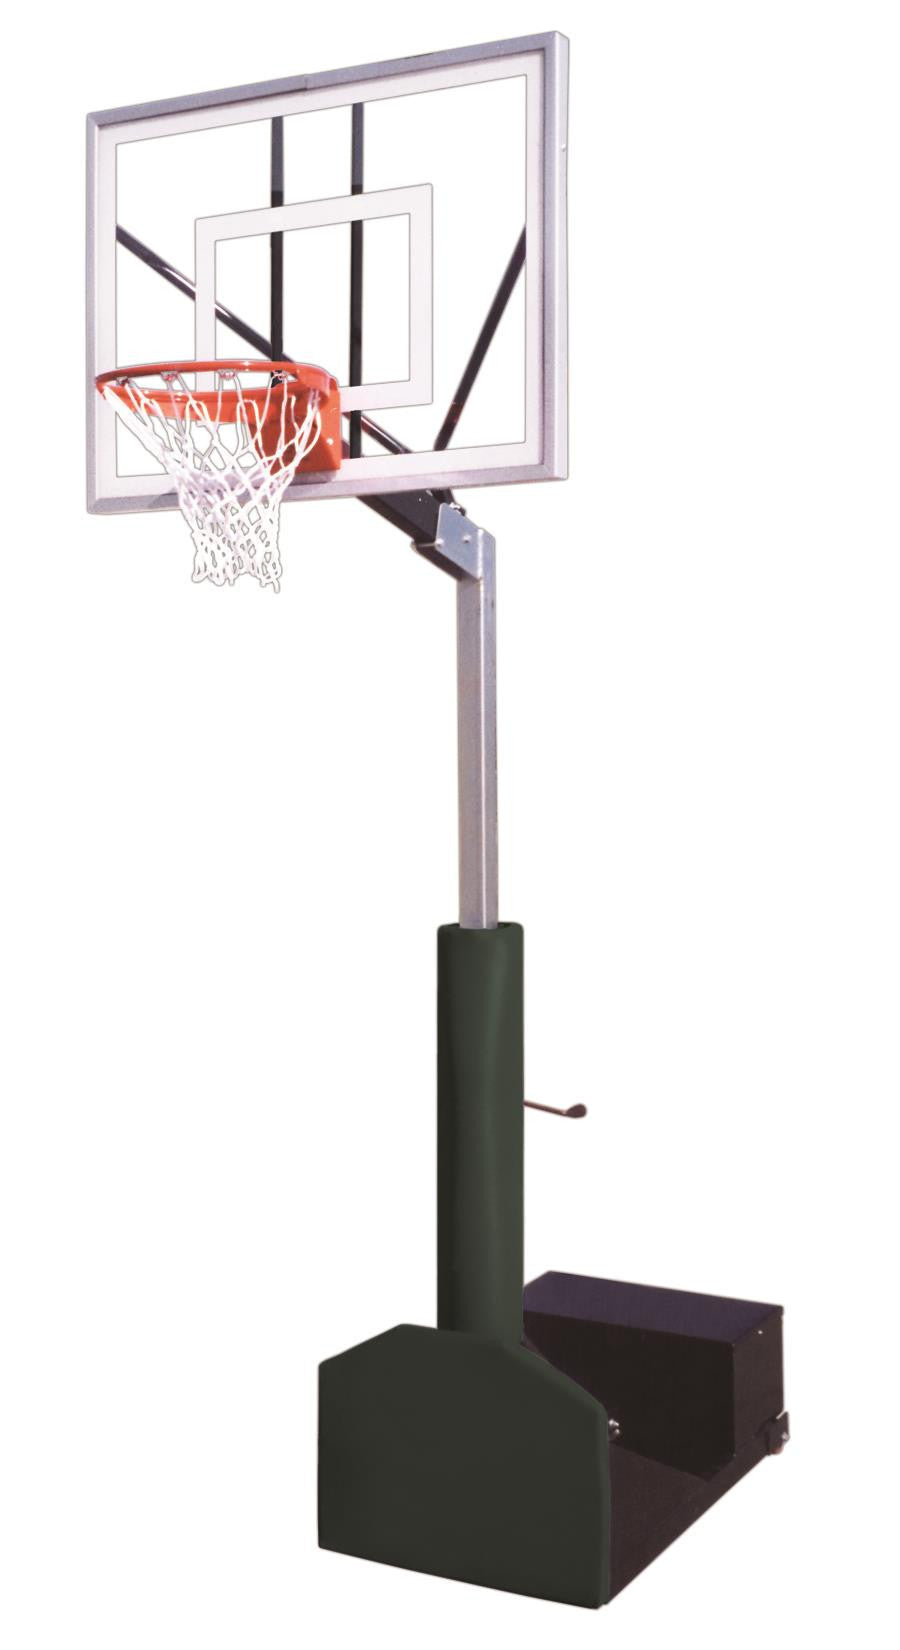 First Team Rampage Eclipse Adjustable Portable Basketball Hoop 54 inch Tempered Glass